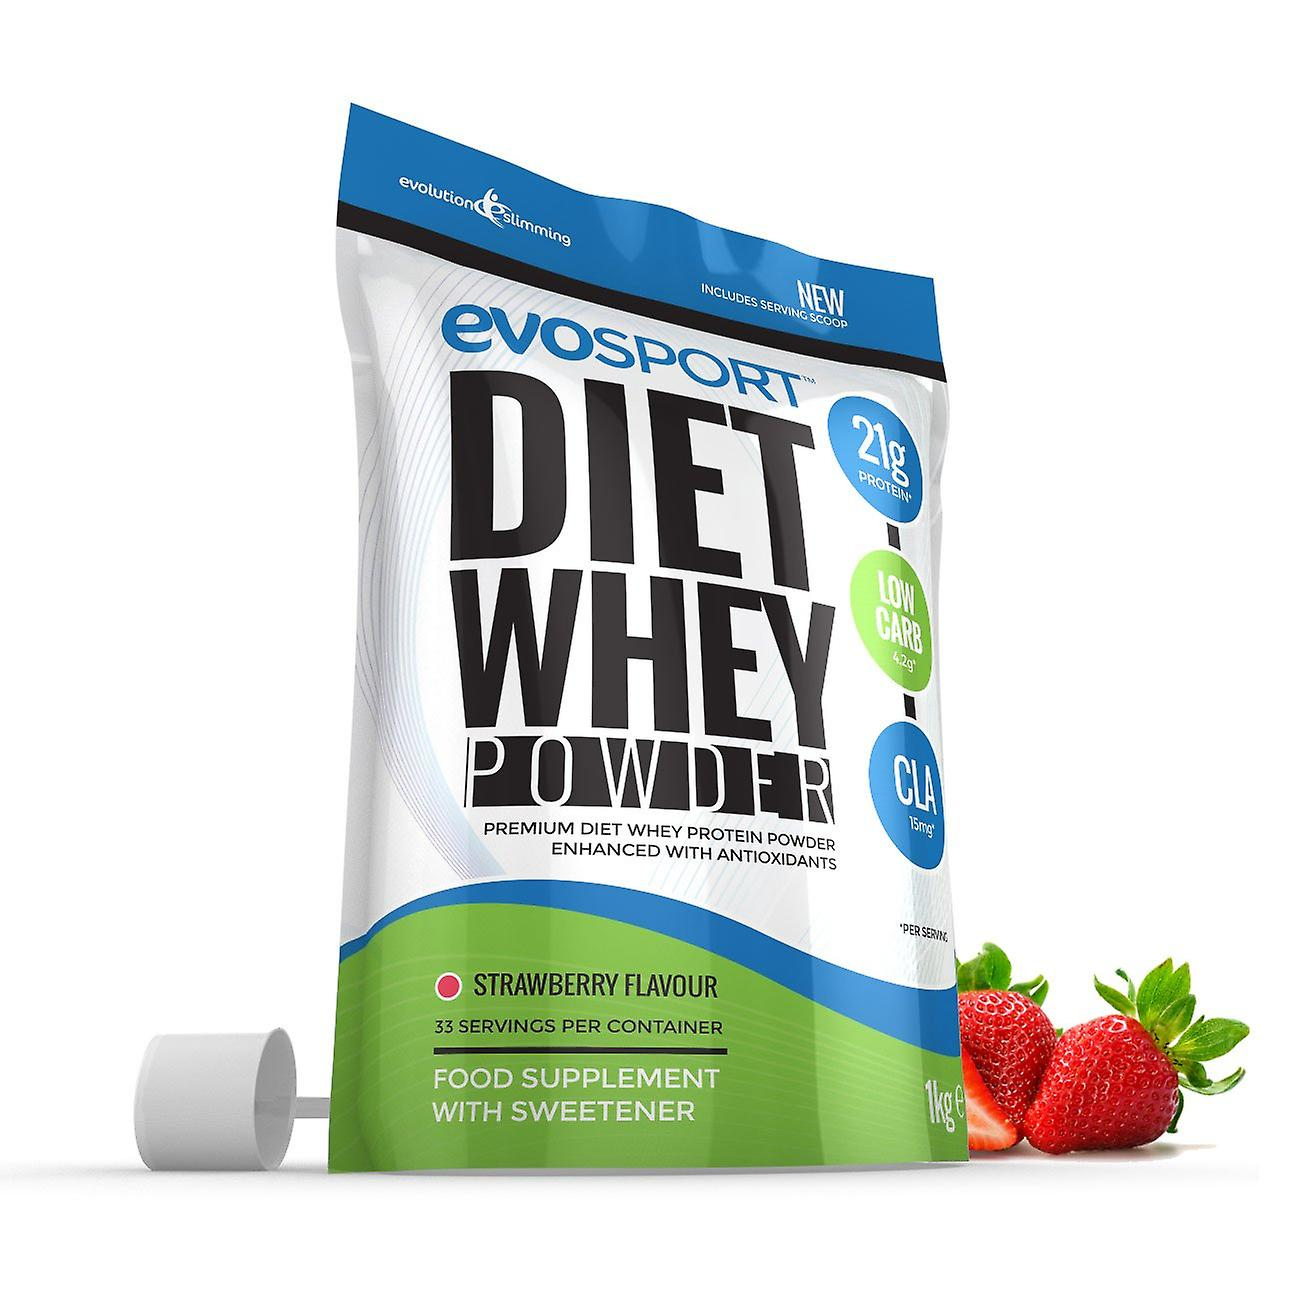 EvoSport Diet Whey Protein with CLA, Acai Berry and Green Tea 1kg - Strawberry - Diet Whey Protein - Evolution Slimming